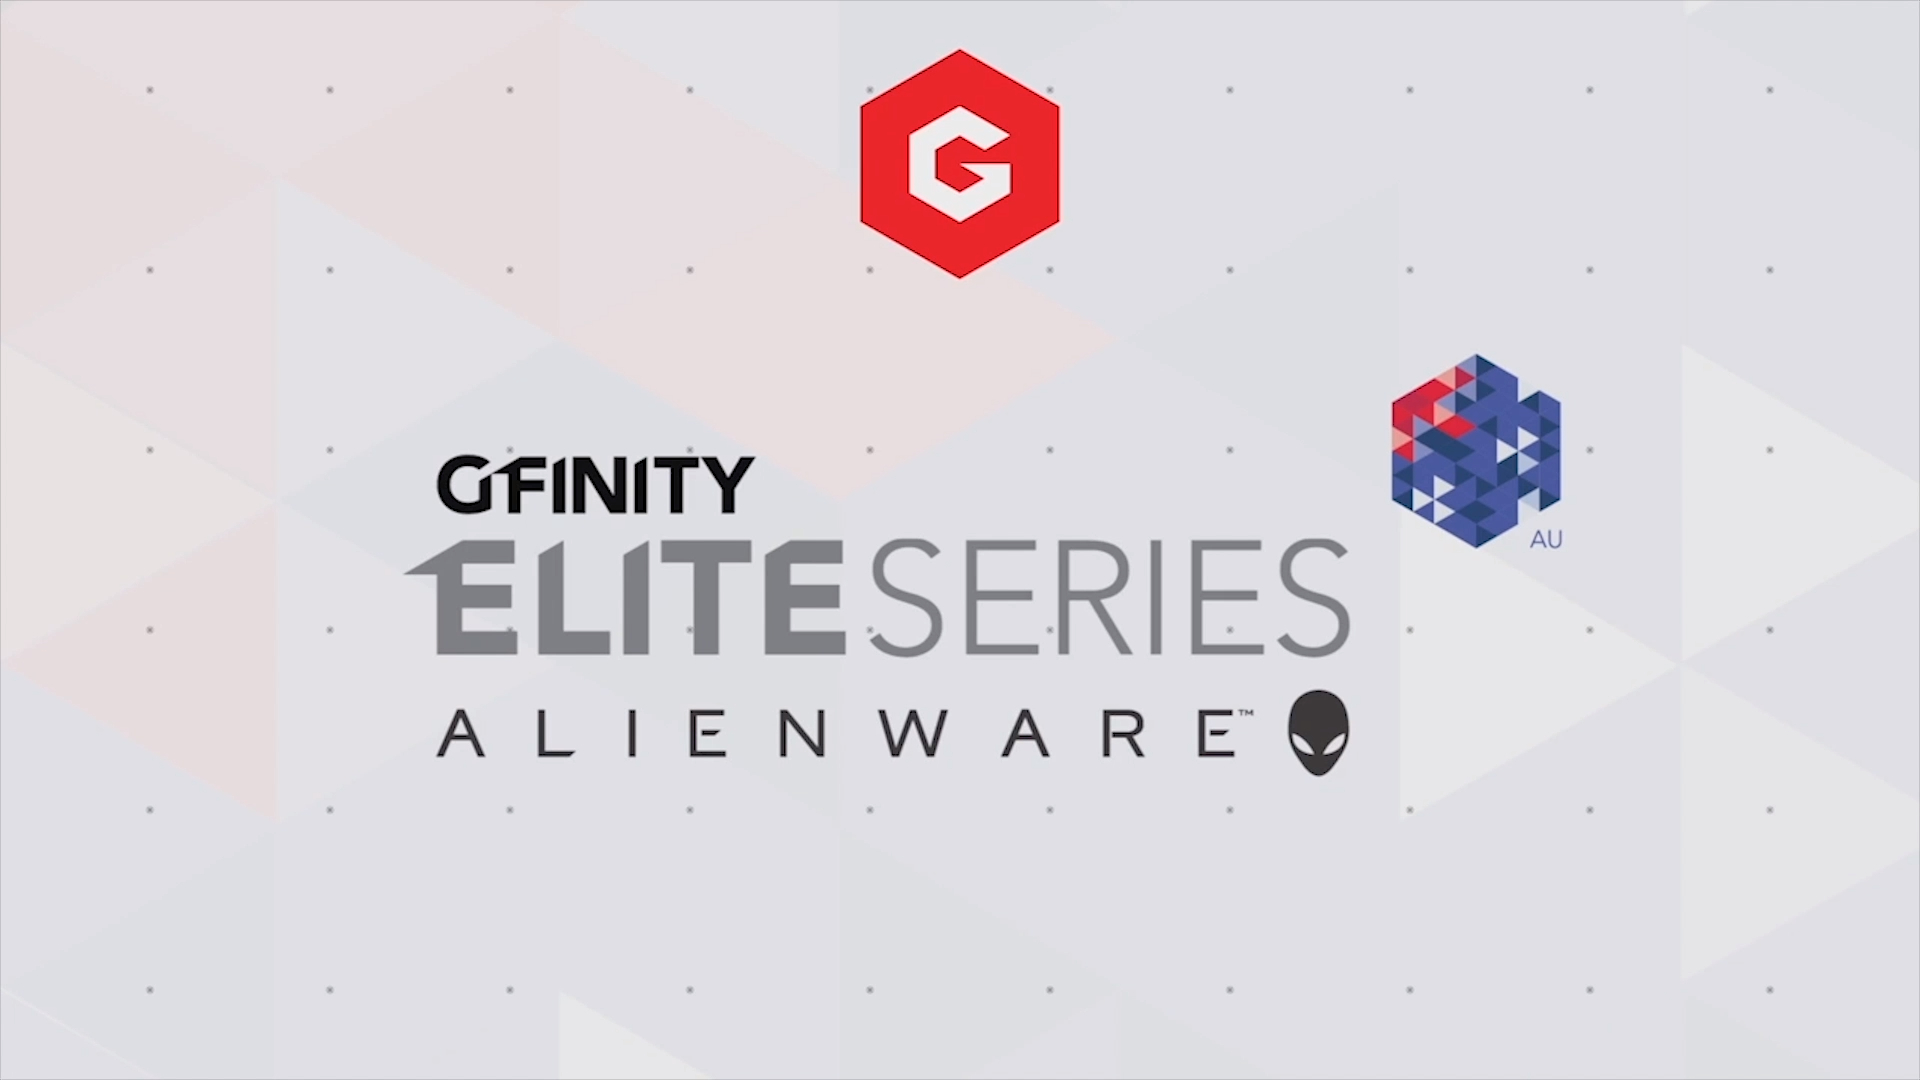 The Gfinity Elite Series explained